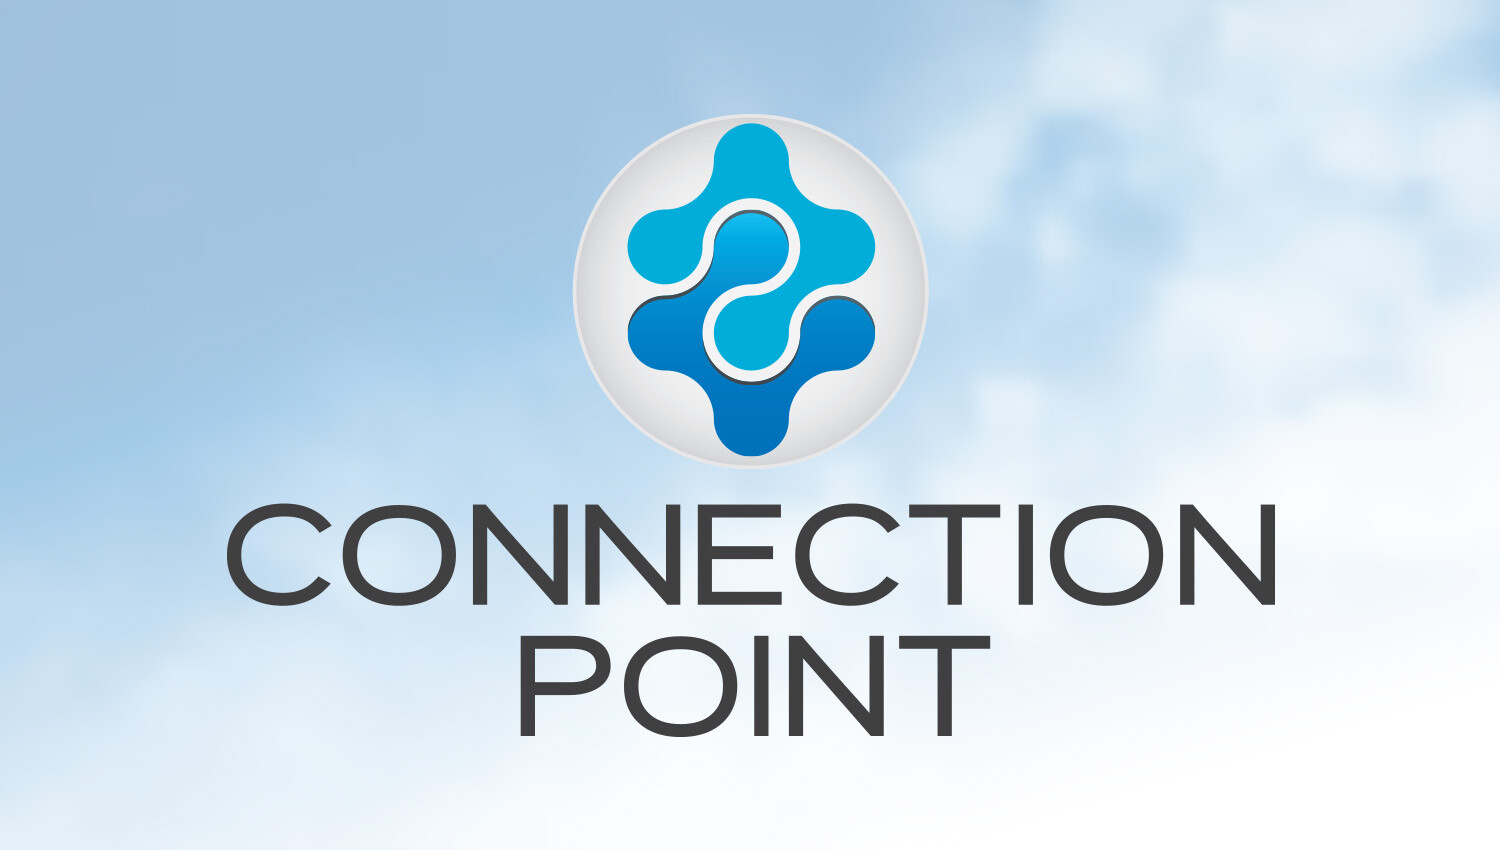 Connection Point